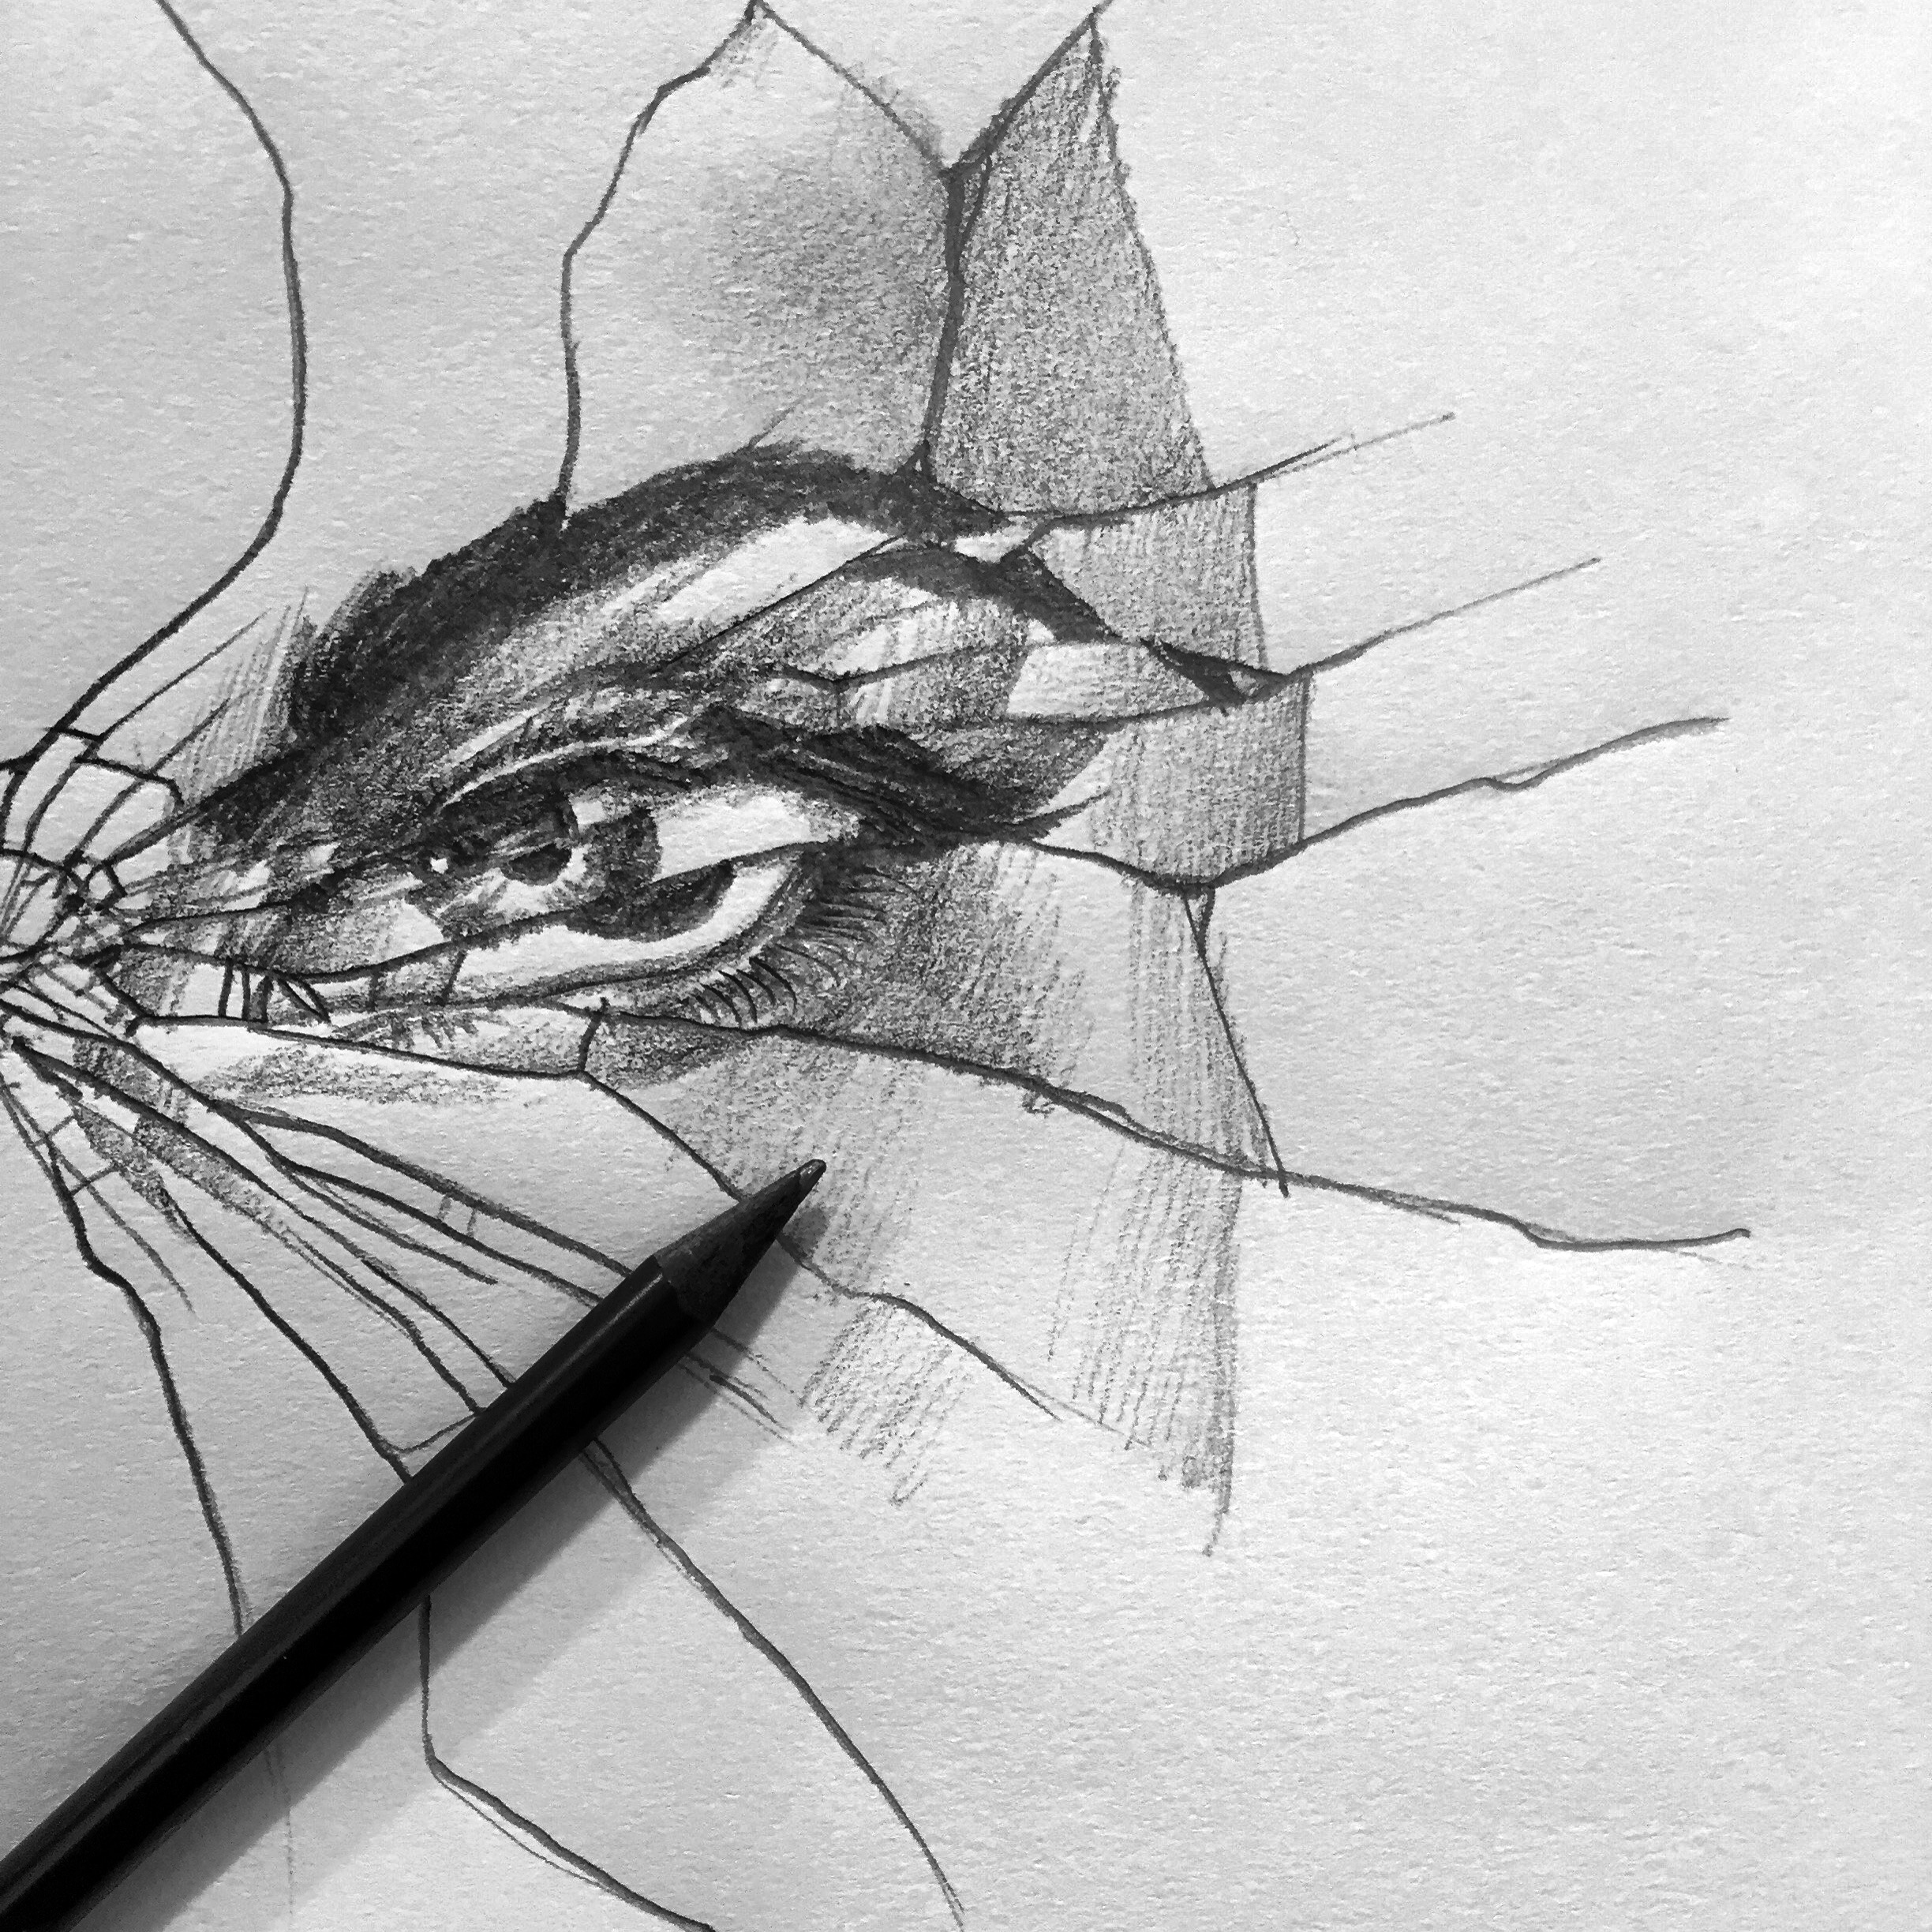 Drawn glass mirrored  #drawing #sketch eye #glass